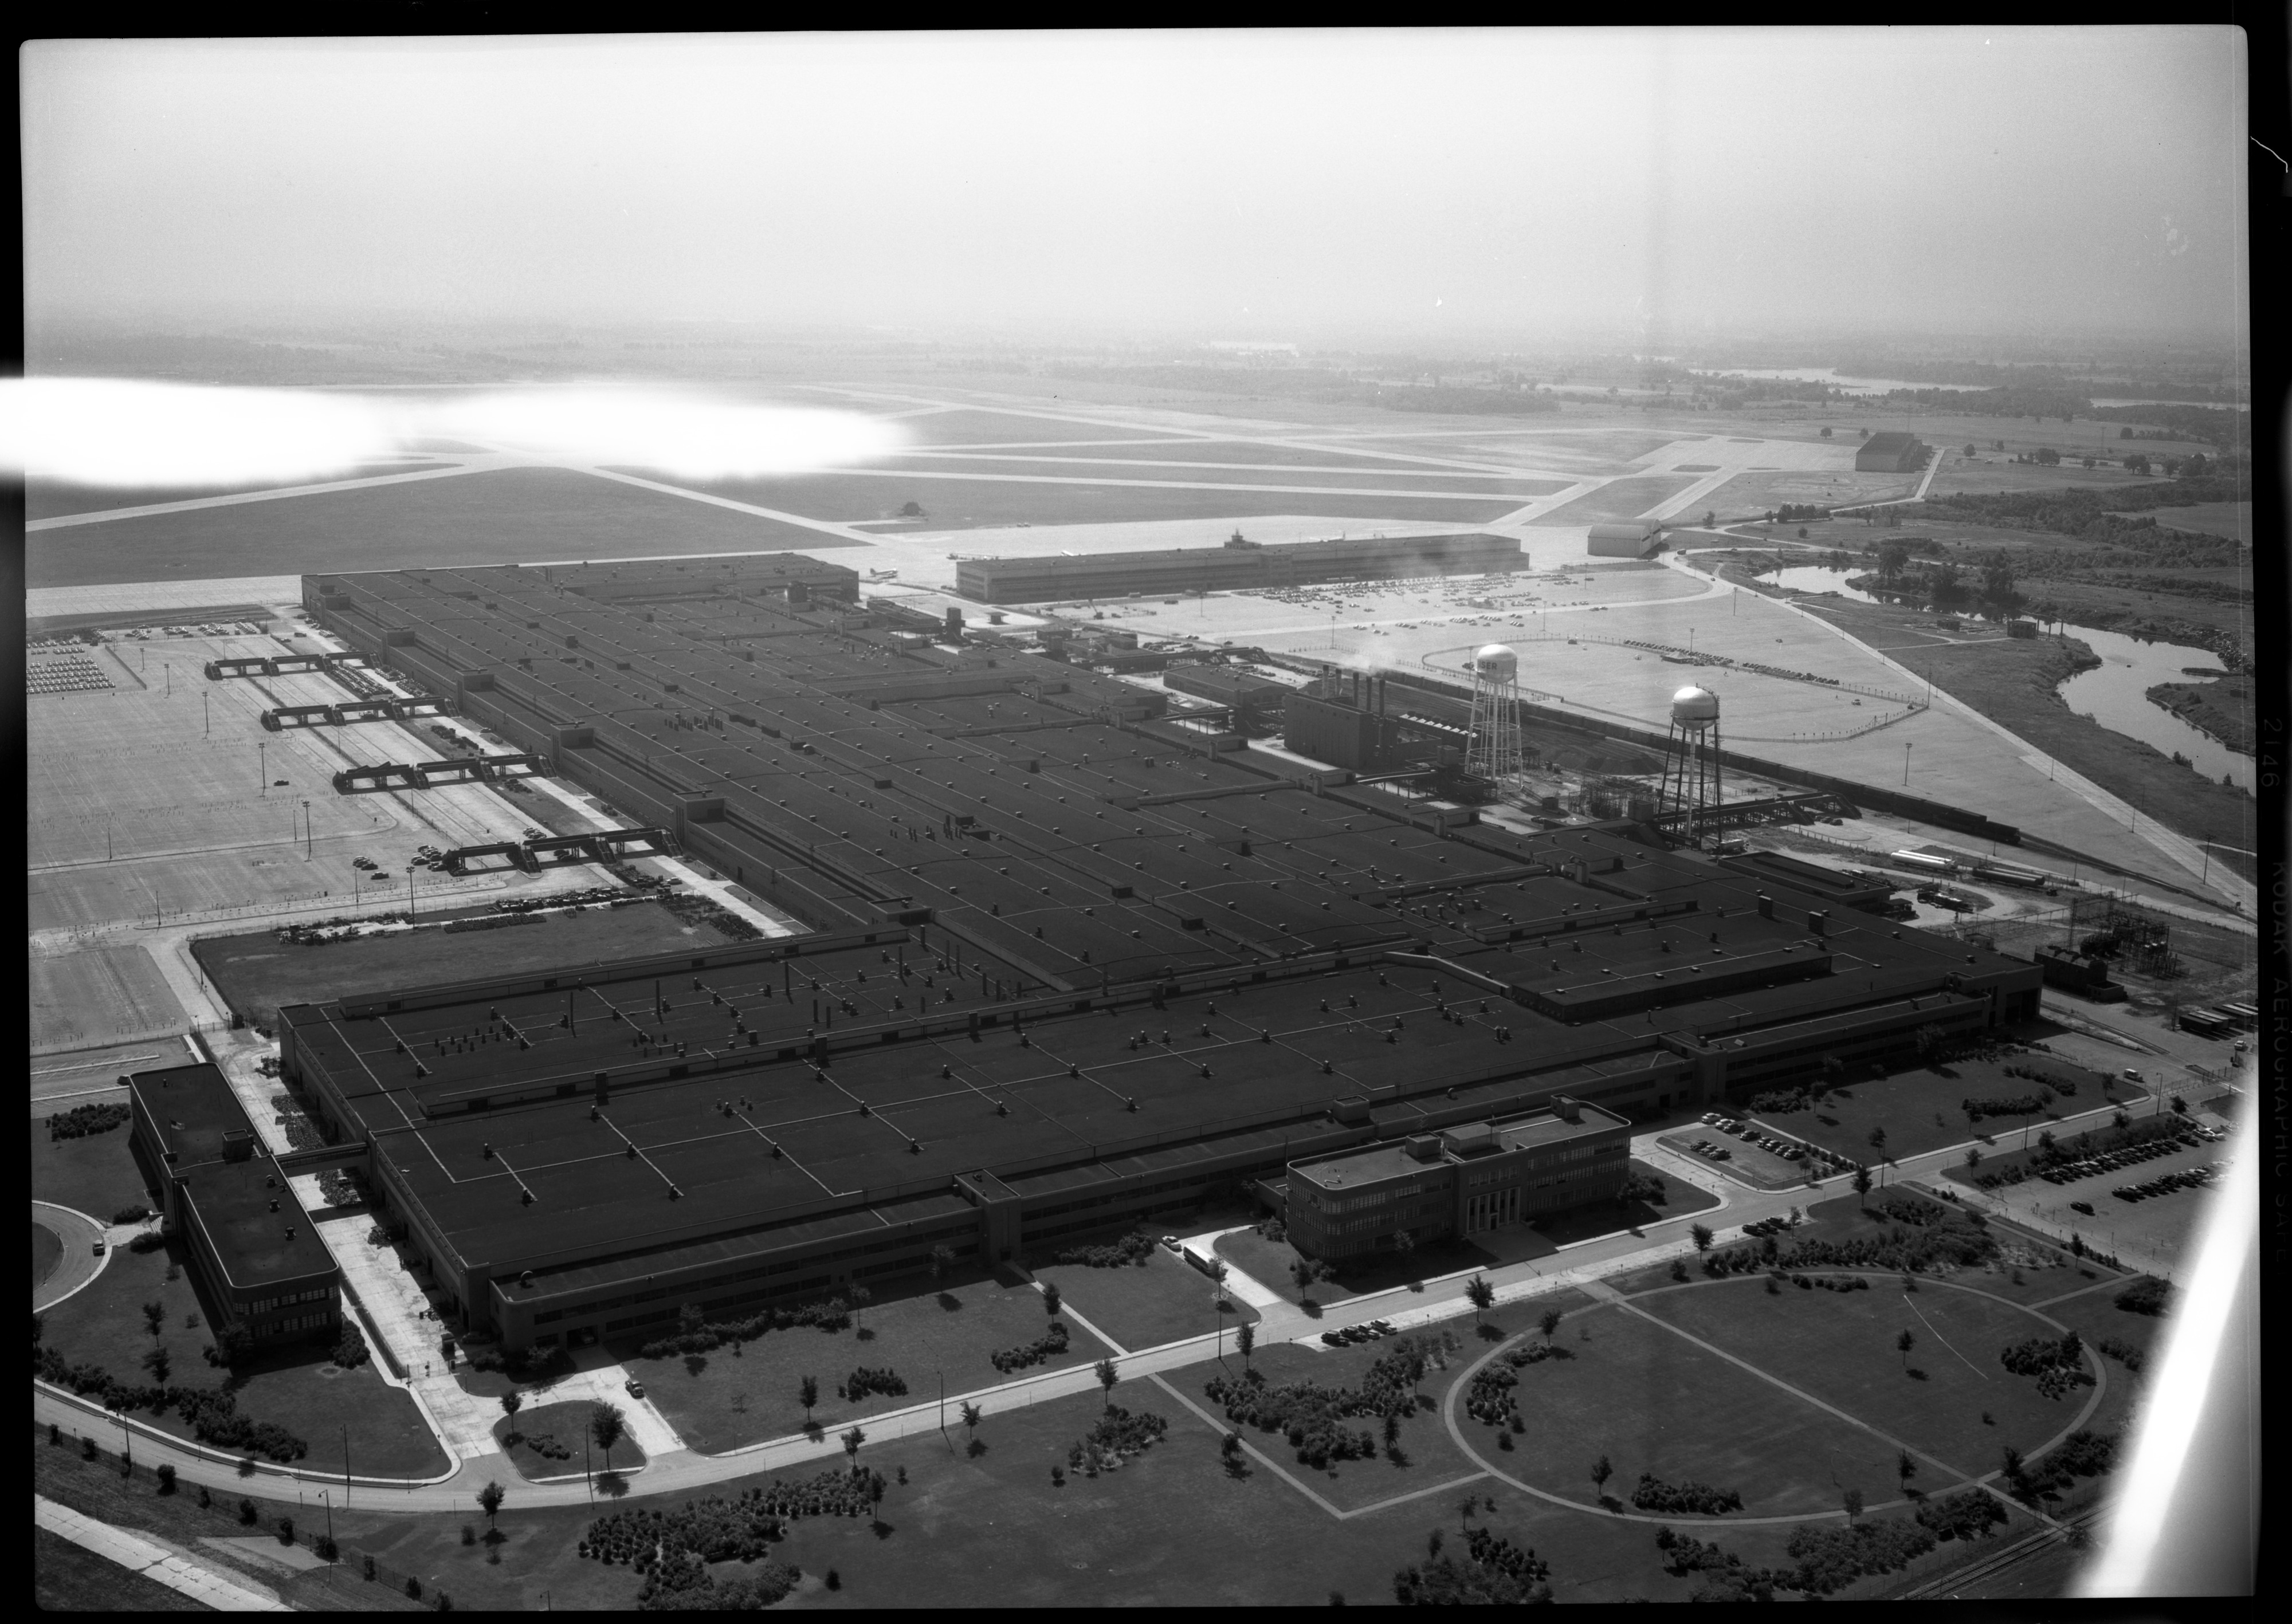 Aerial Photograph of the Kaiser-Frazer's Willow Run Plant, July 1950 image